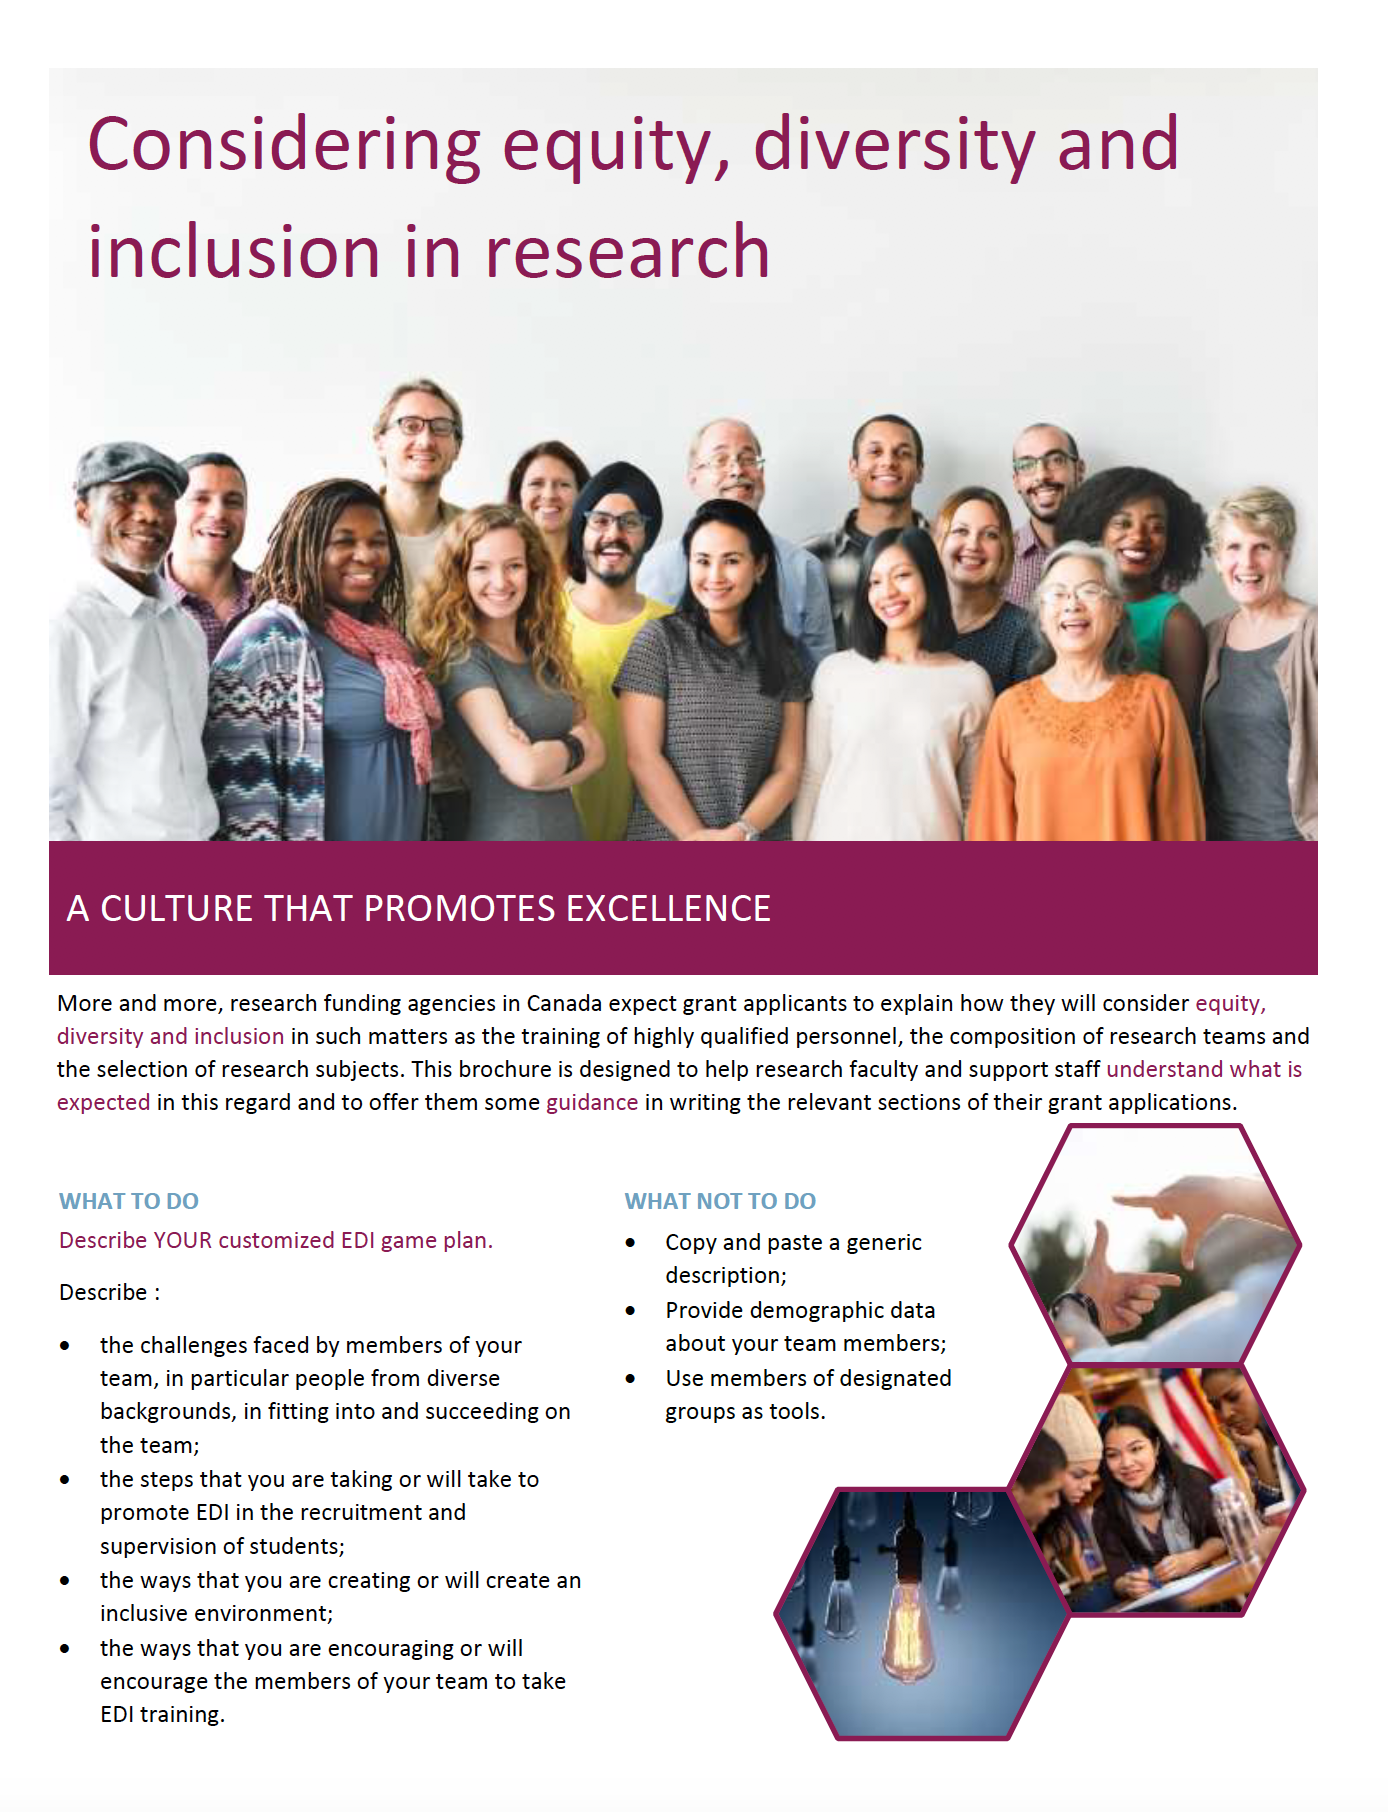 Considering Equity, Diversity and Inclusion in Research